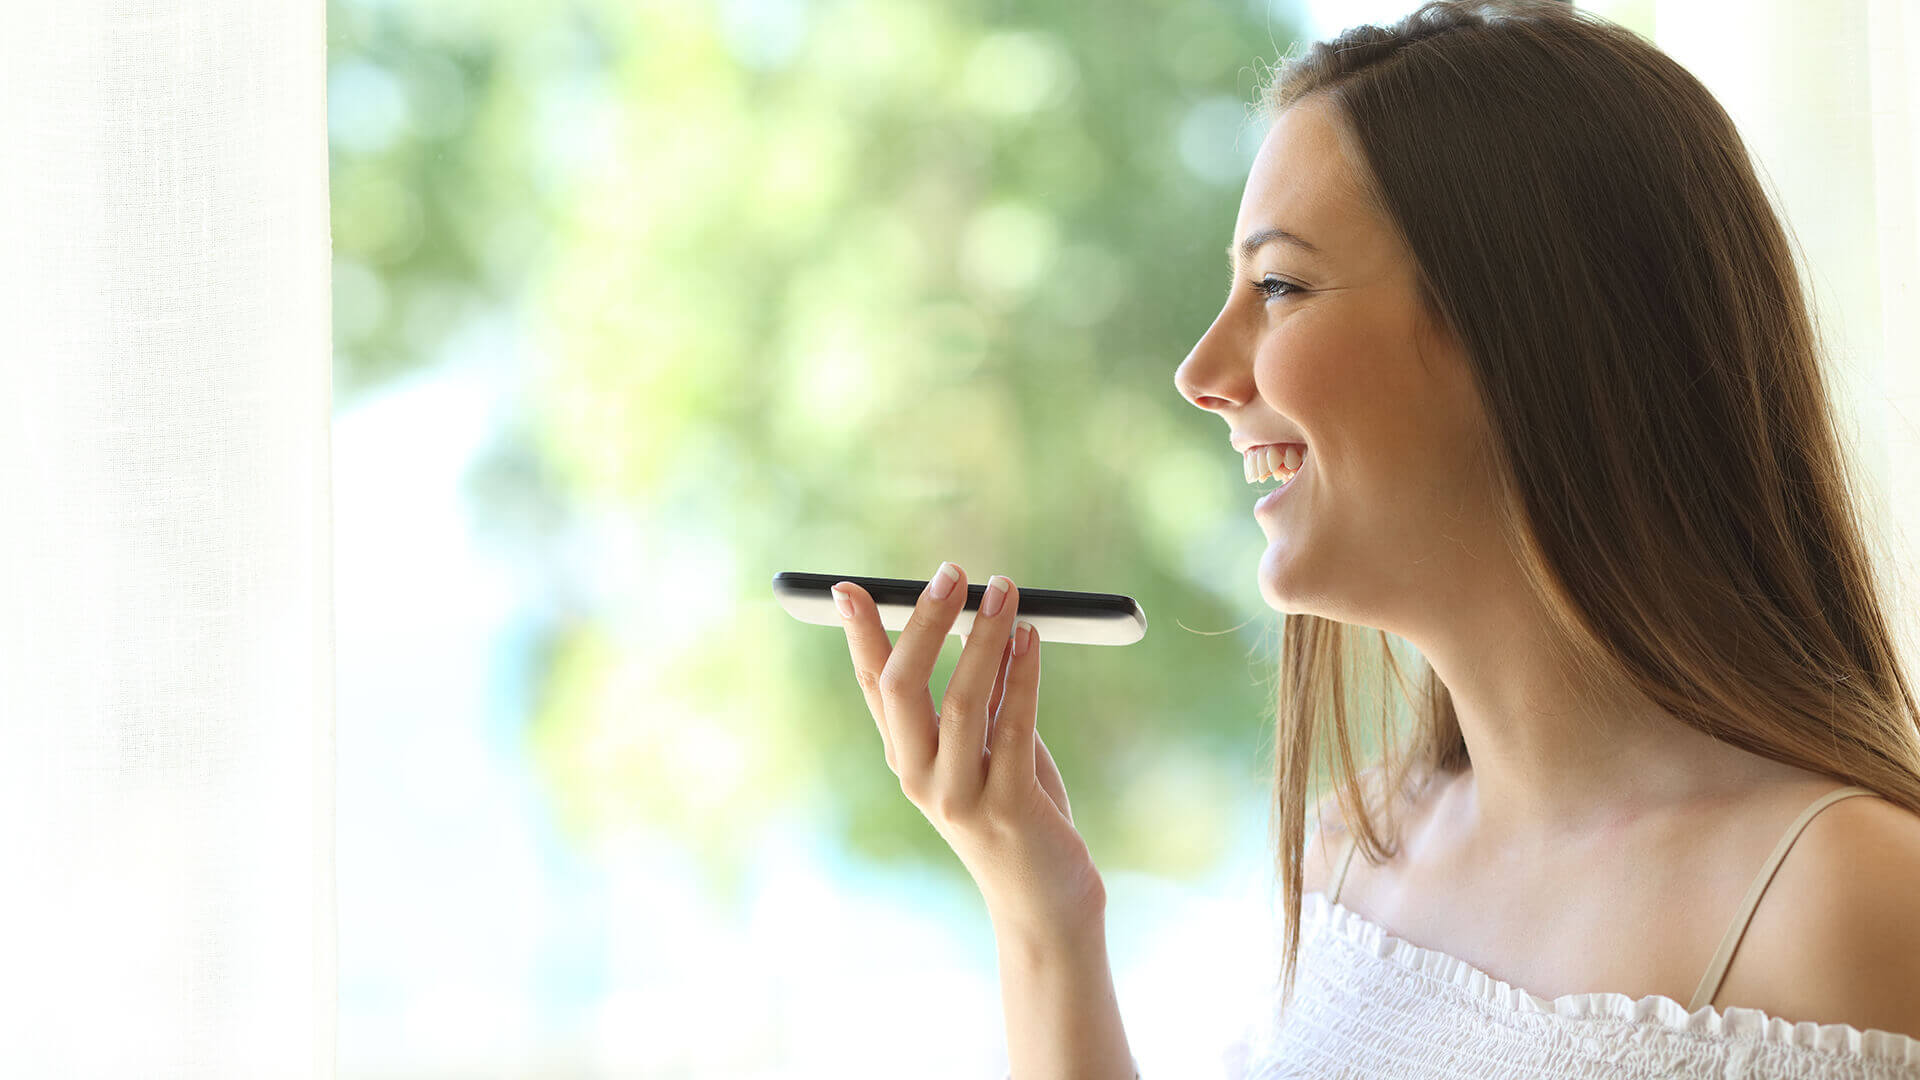 Video marketing tops list of marketers' priorities, voice search ranks low